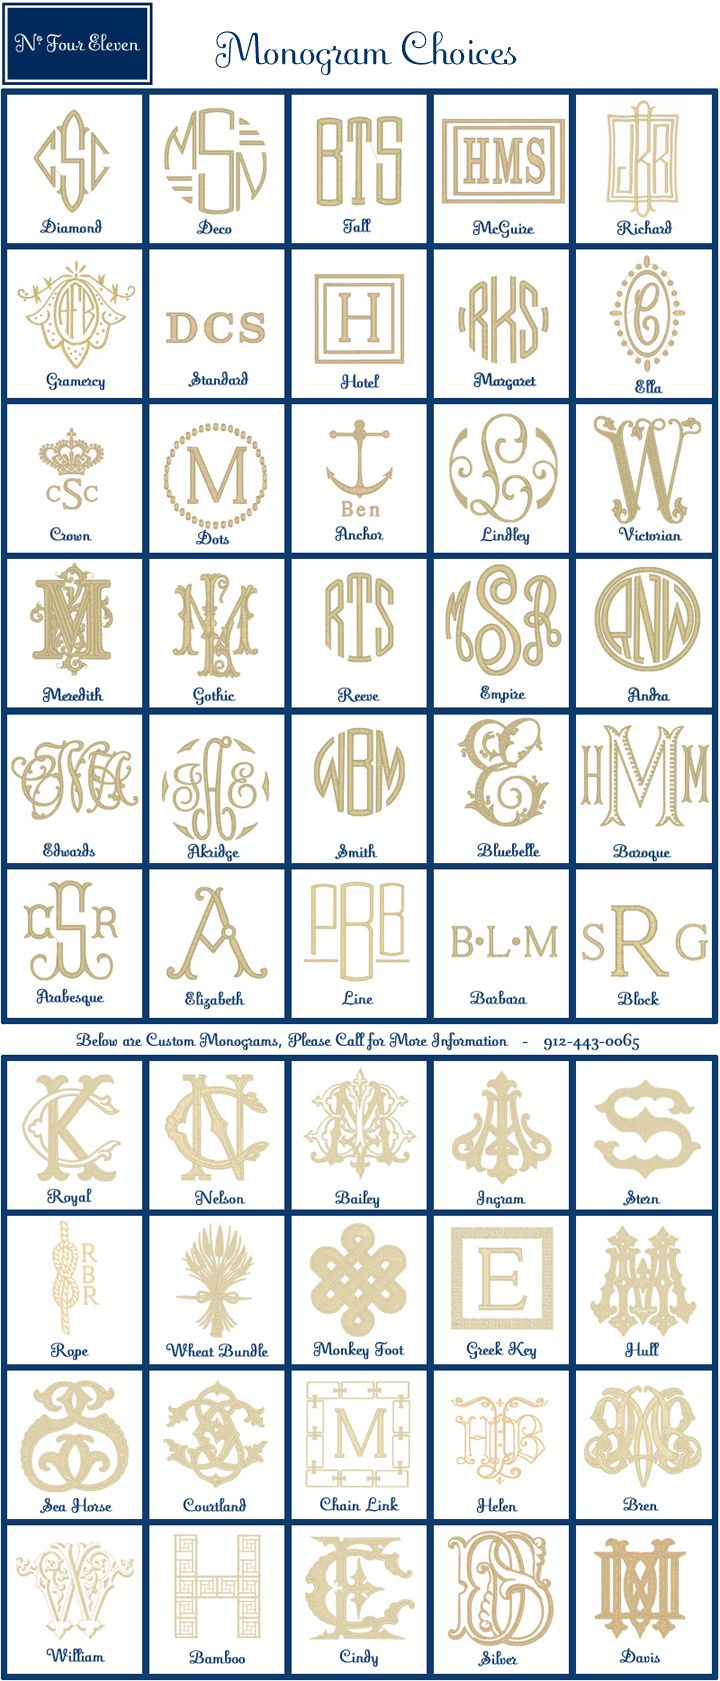 monograms galore